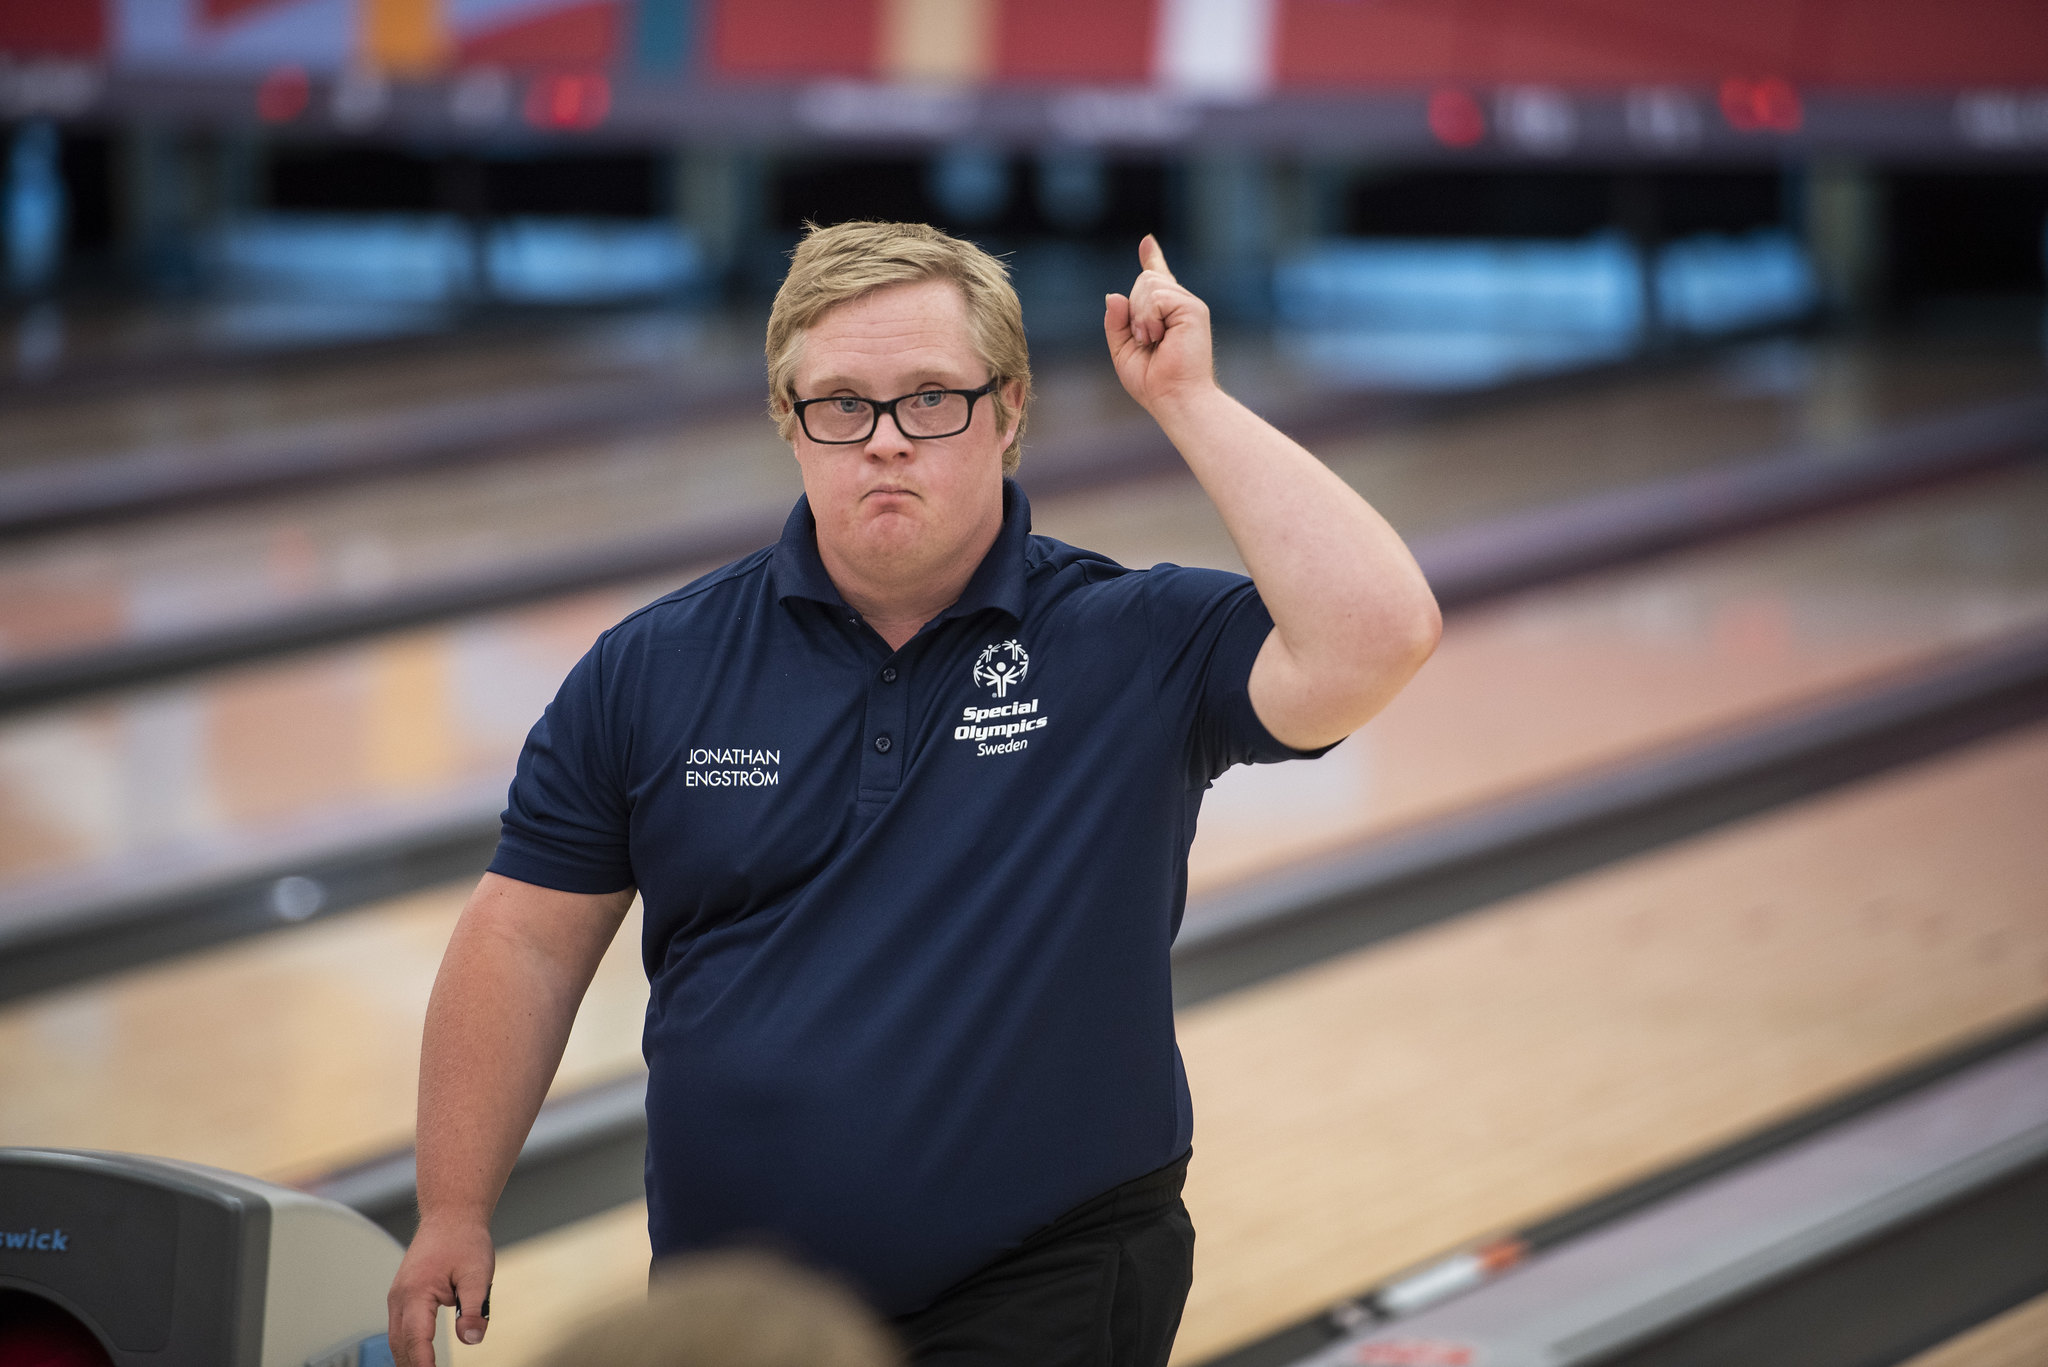 Bowling, Special Olympics World Summer Games, Abu Dhabi 2019